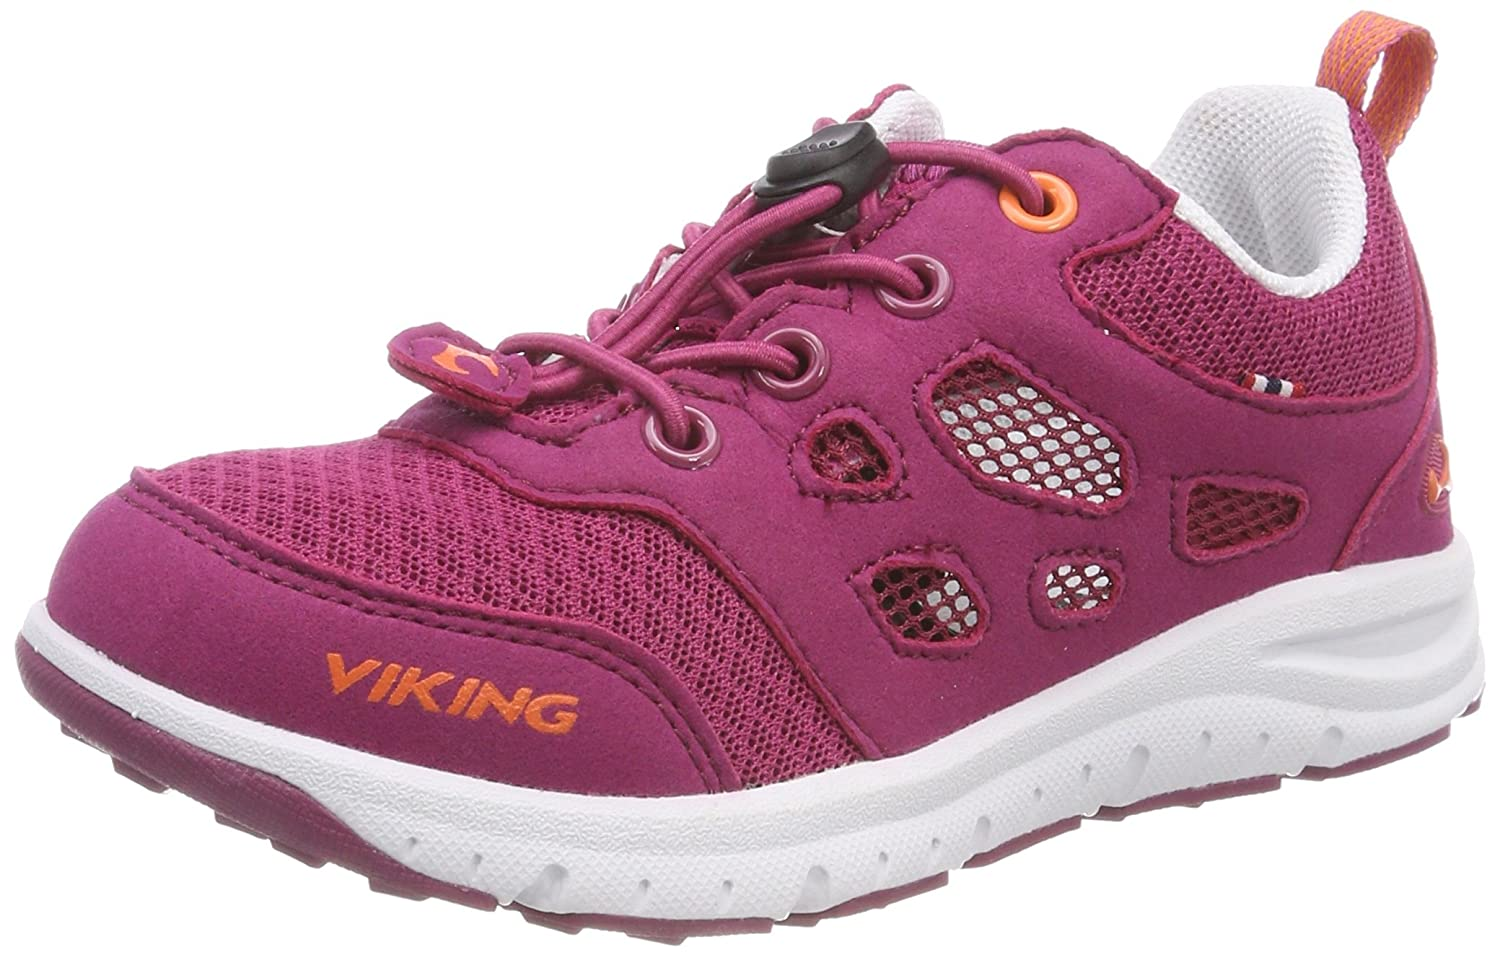 viking Unisex-Kinder Saratoga Air Outdoor Fitnessschuhe 3-48750